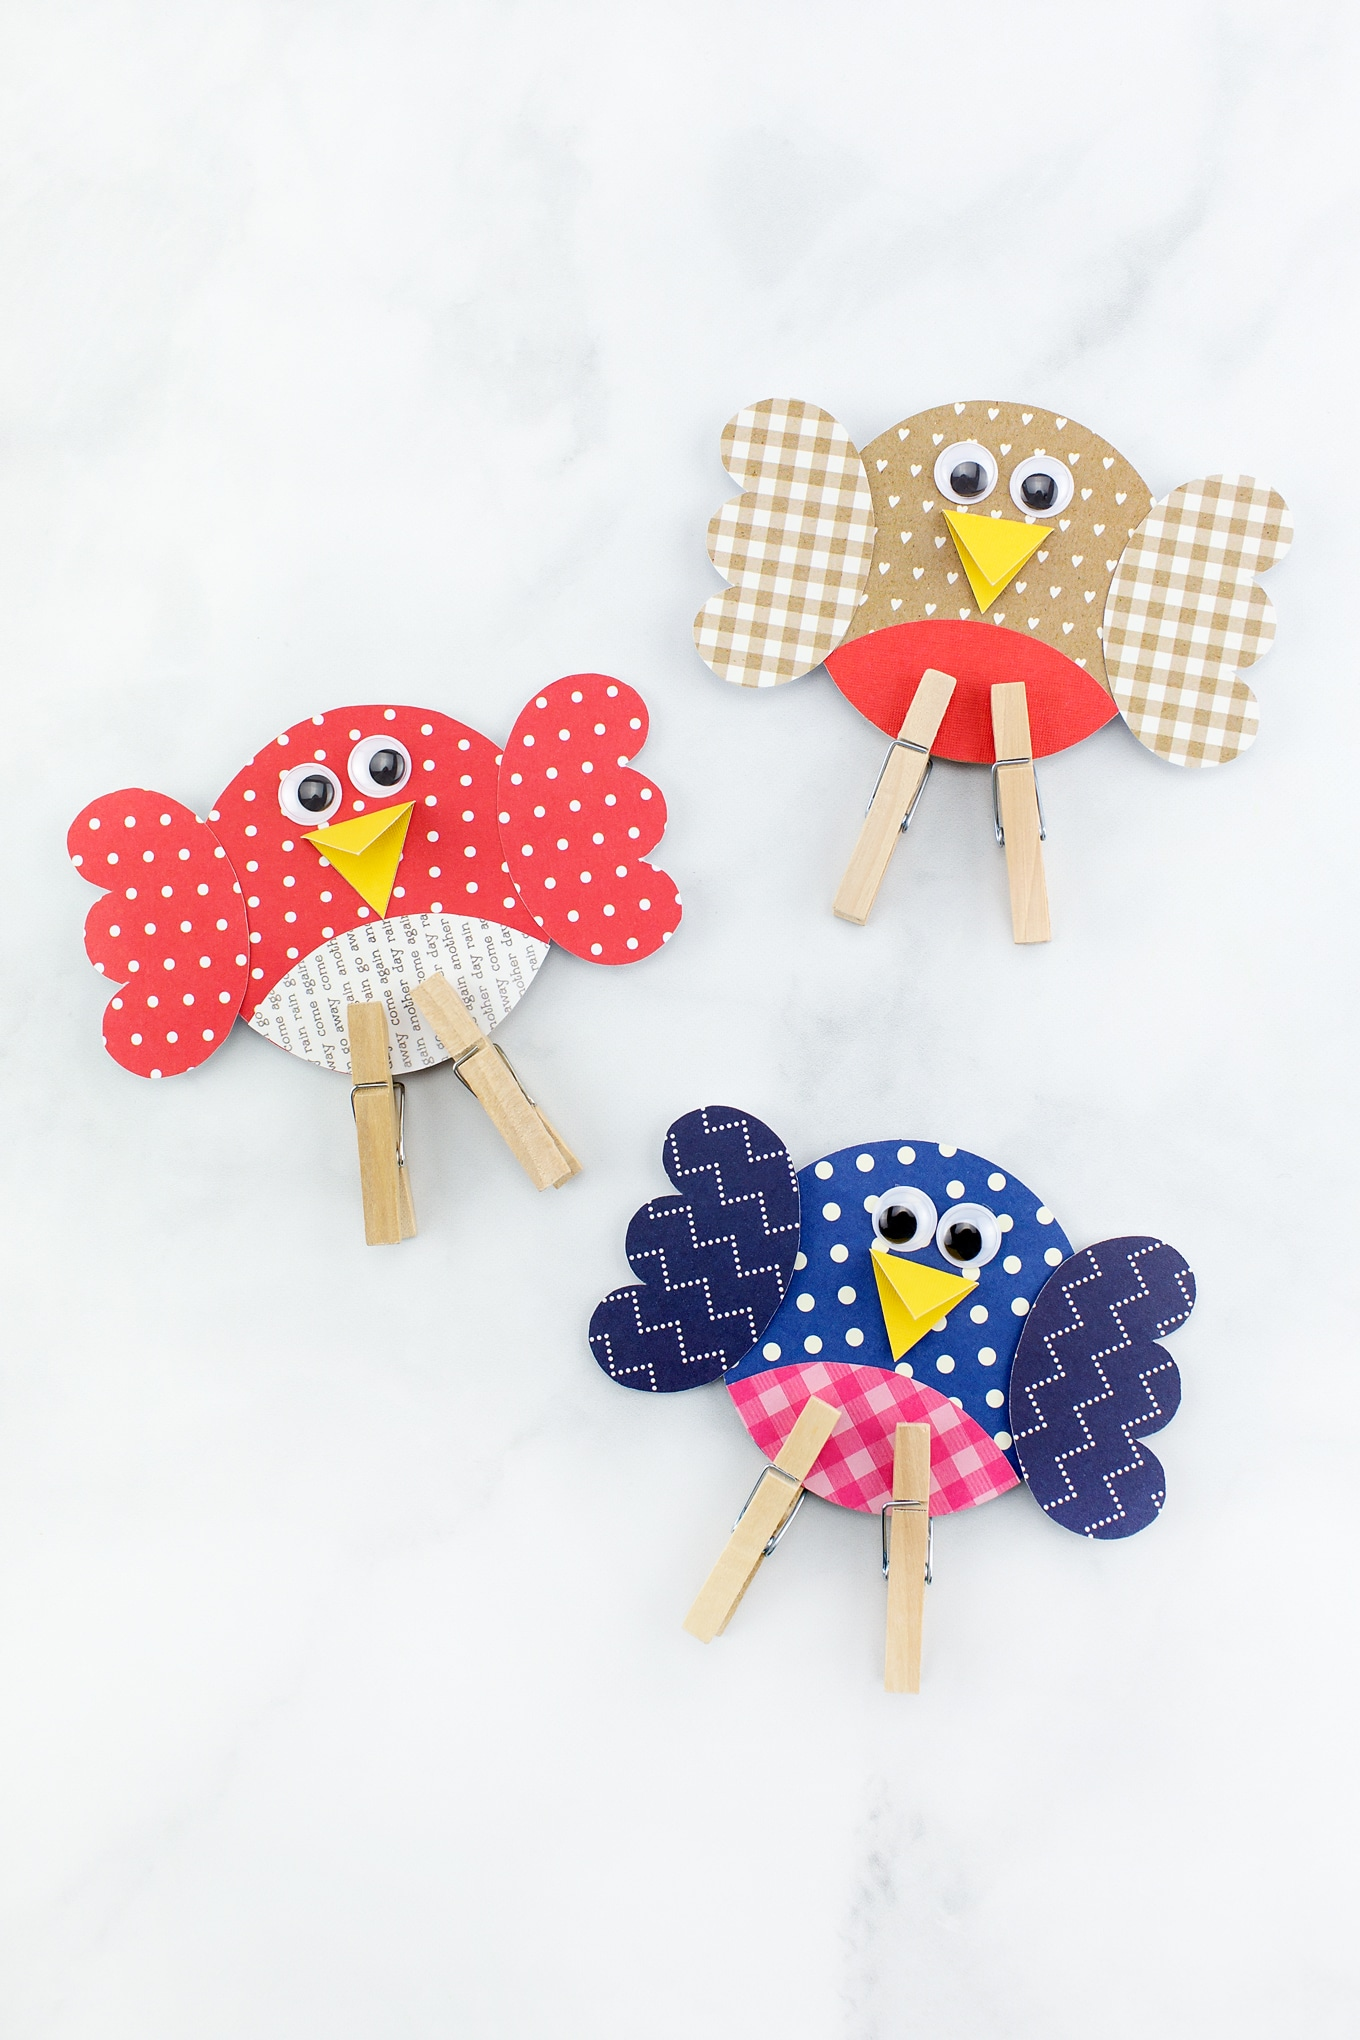 How to Make an Easy and Fun Paper Bird Craft